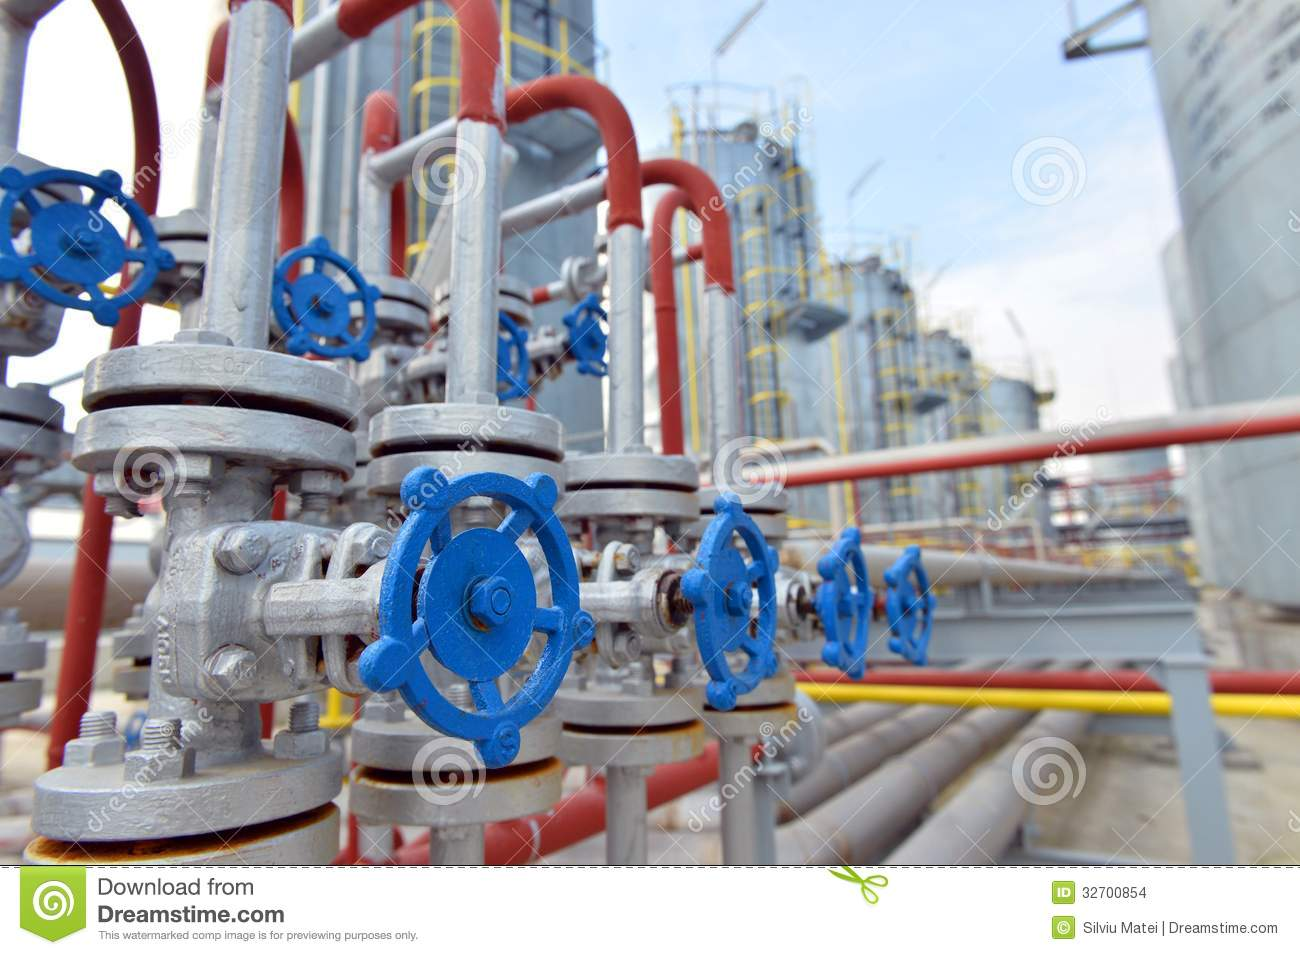 Pipes and valves in petrochemical factory